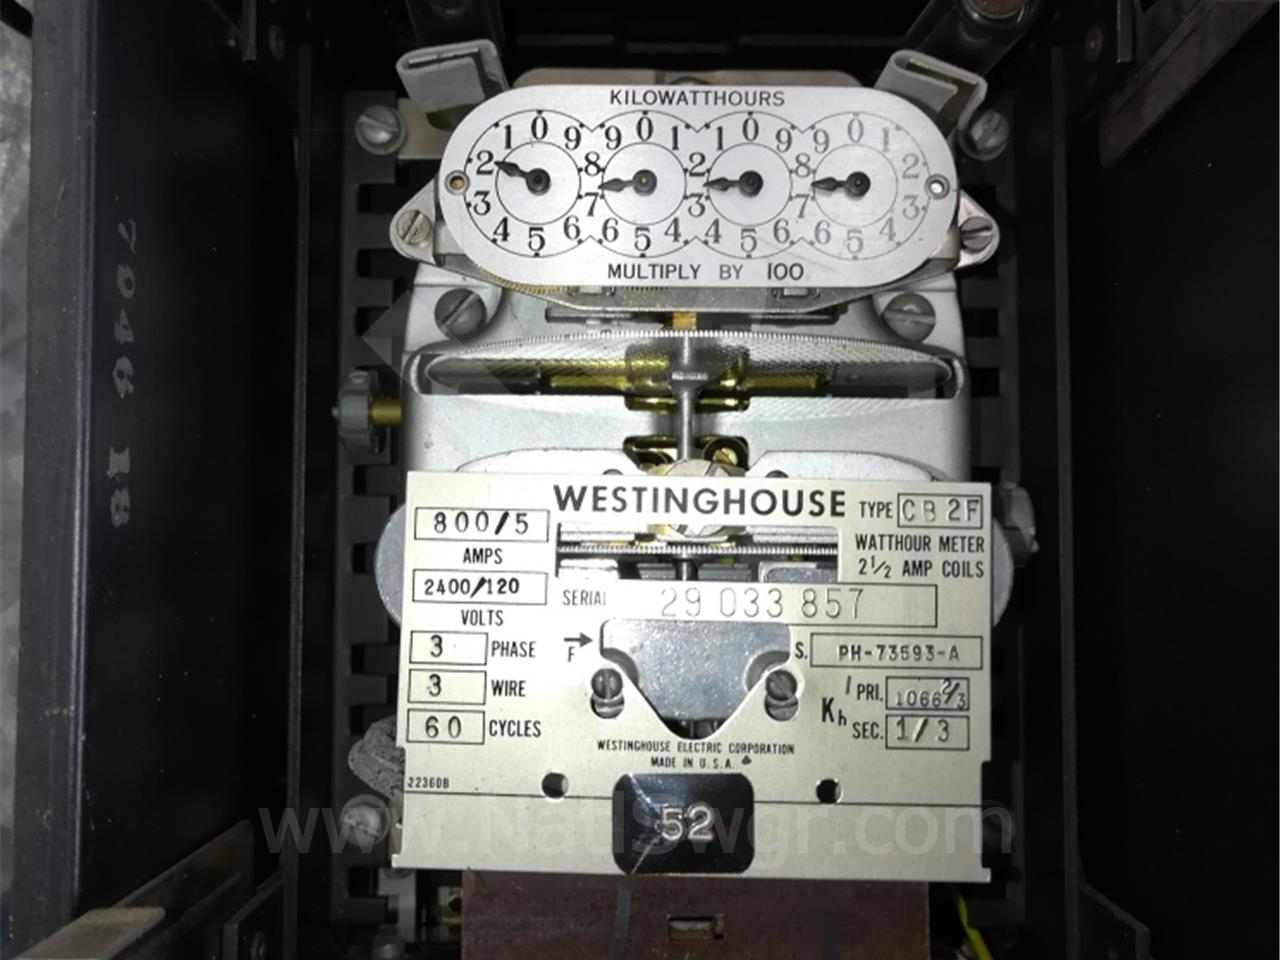 PH73593A Westinghouse CB-2F WATTHOUR METER RELAY